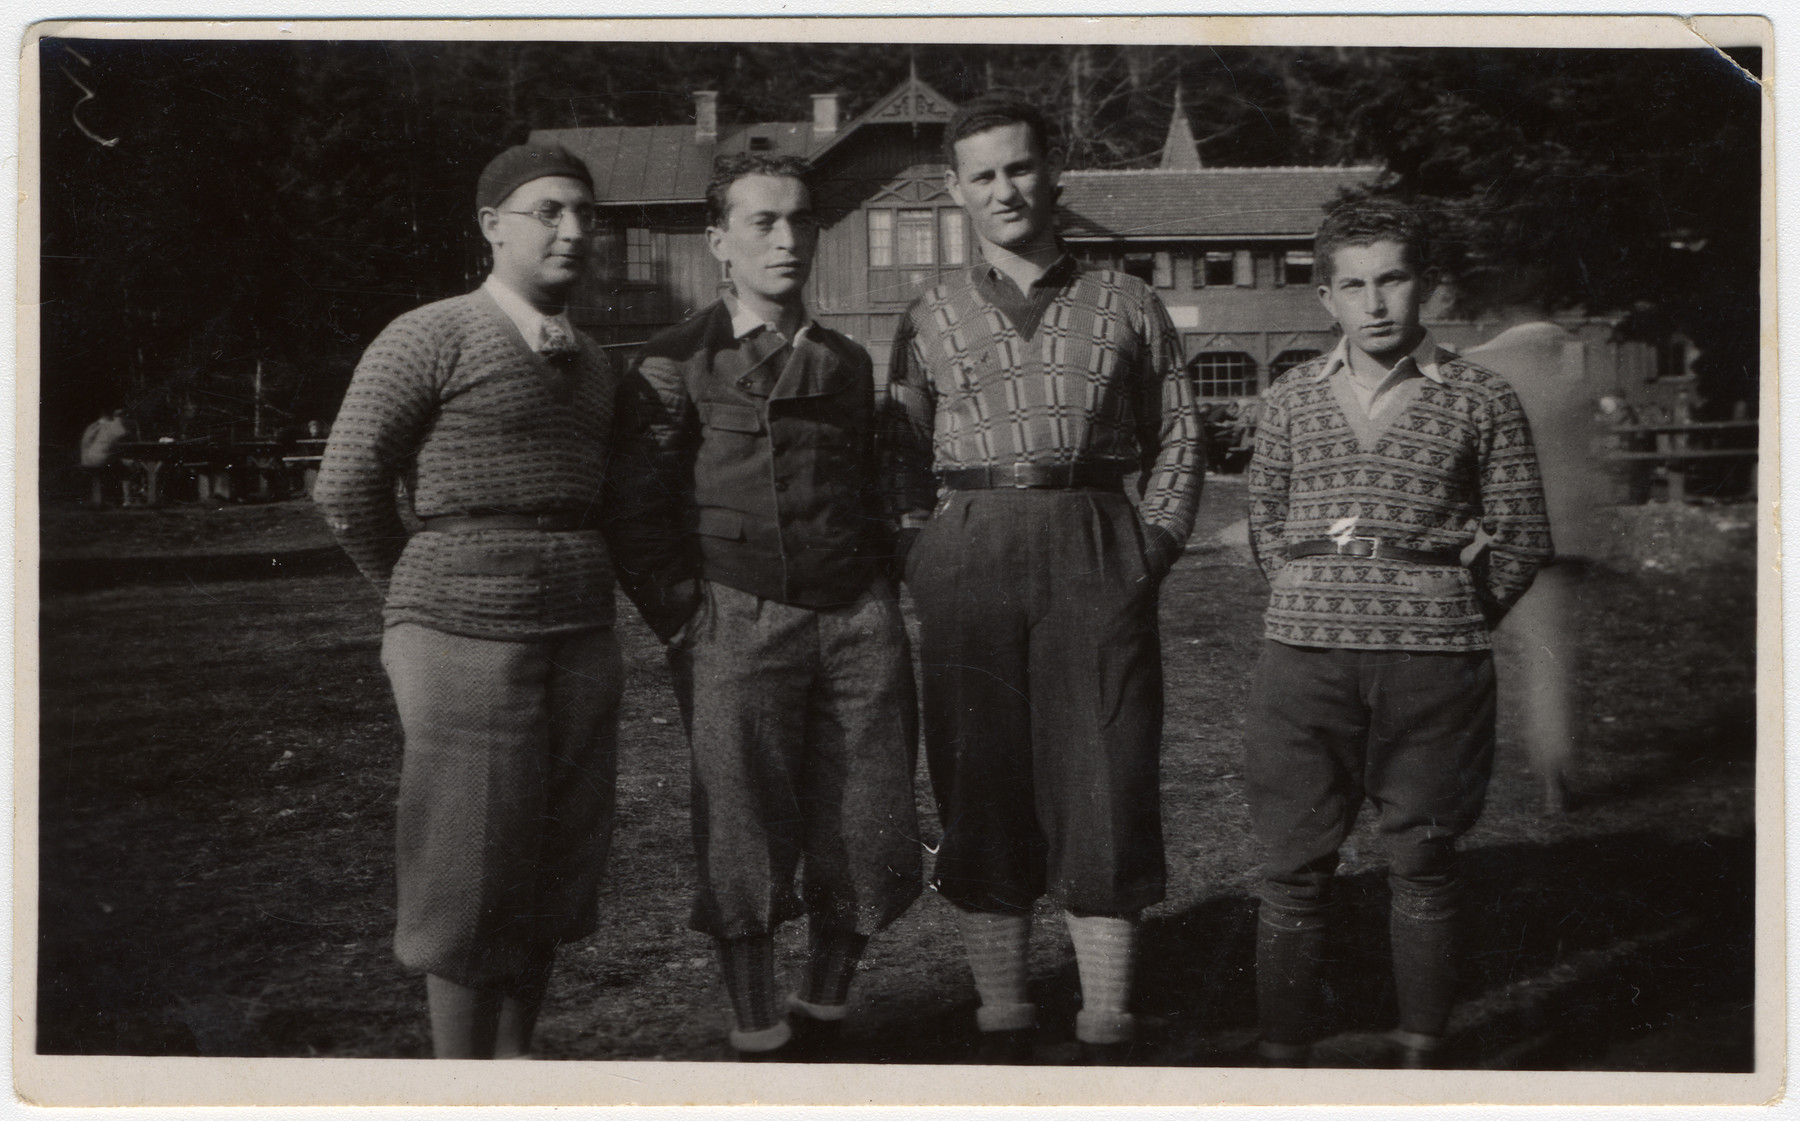 Group portrait of four friends, all members of the Craotian Maccabi team.  Andor Willer is standing on the far right.  The man to his left survived and moved to Israel.  The other three all perished.